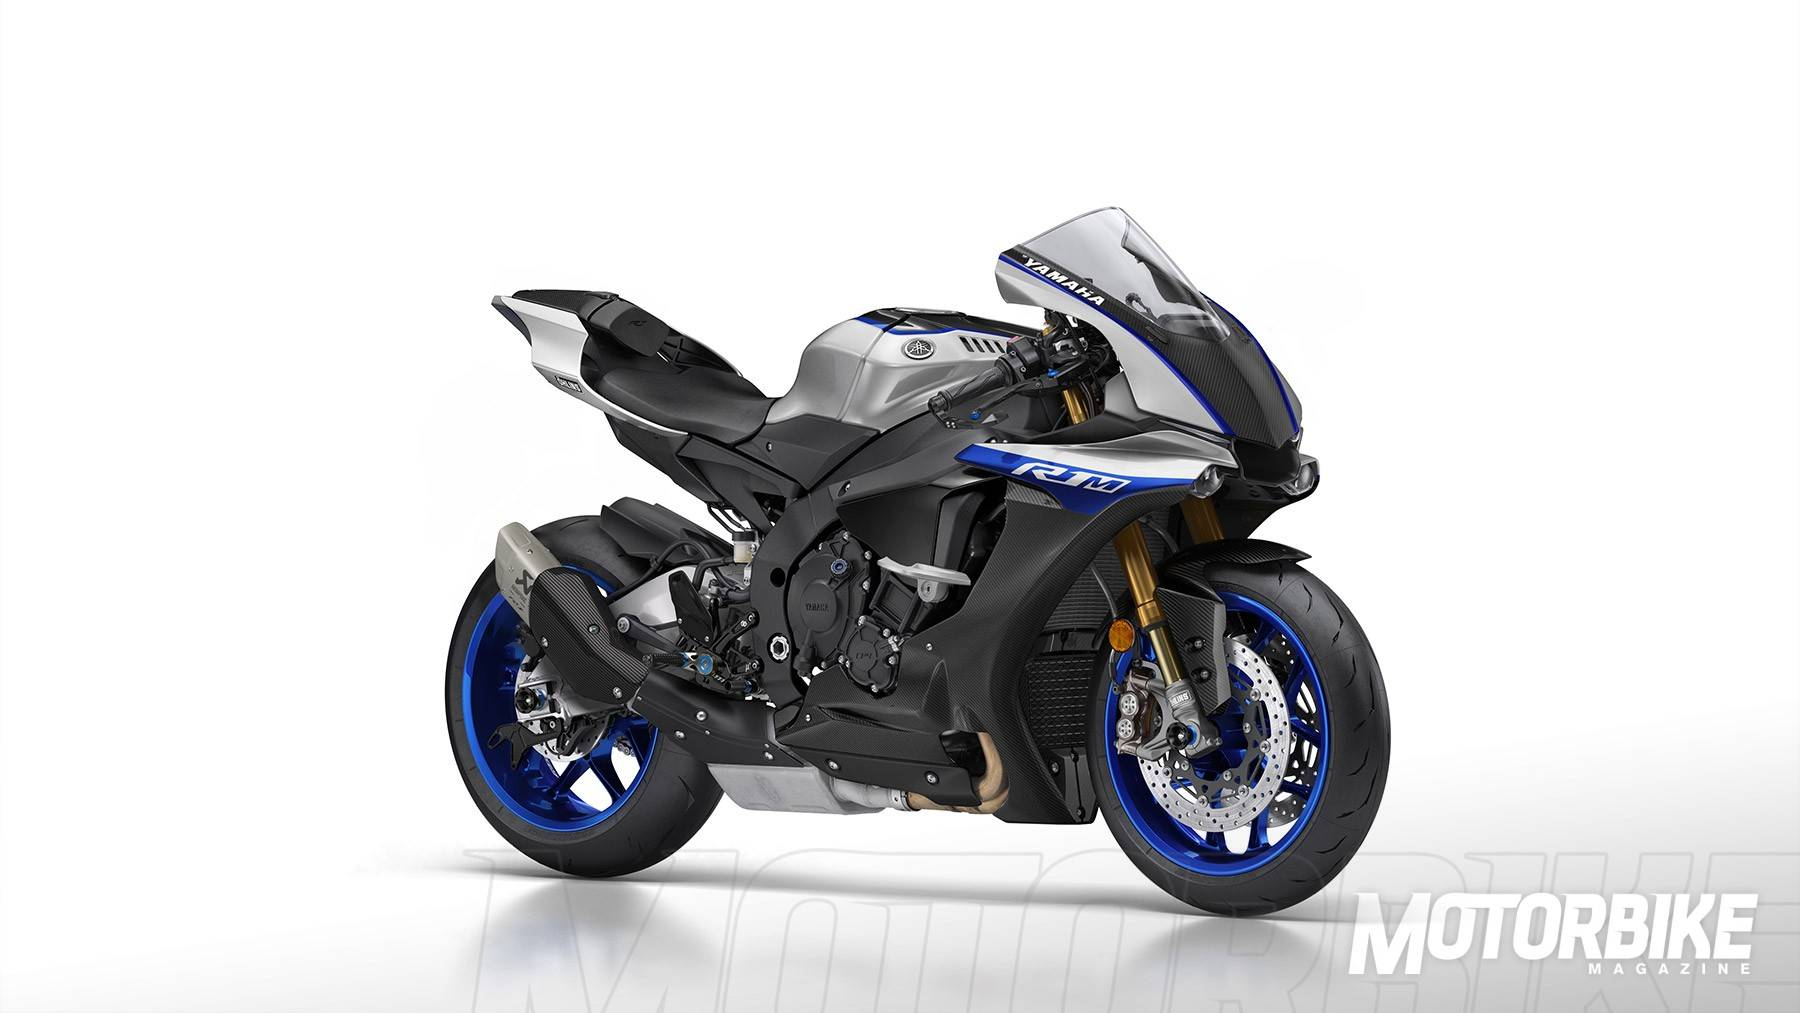 yamaha yzf r1m 2018 precio fotos ficha t cnica y motos rivales. Black Bedroom Furniture Sets. Home Design Ideas